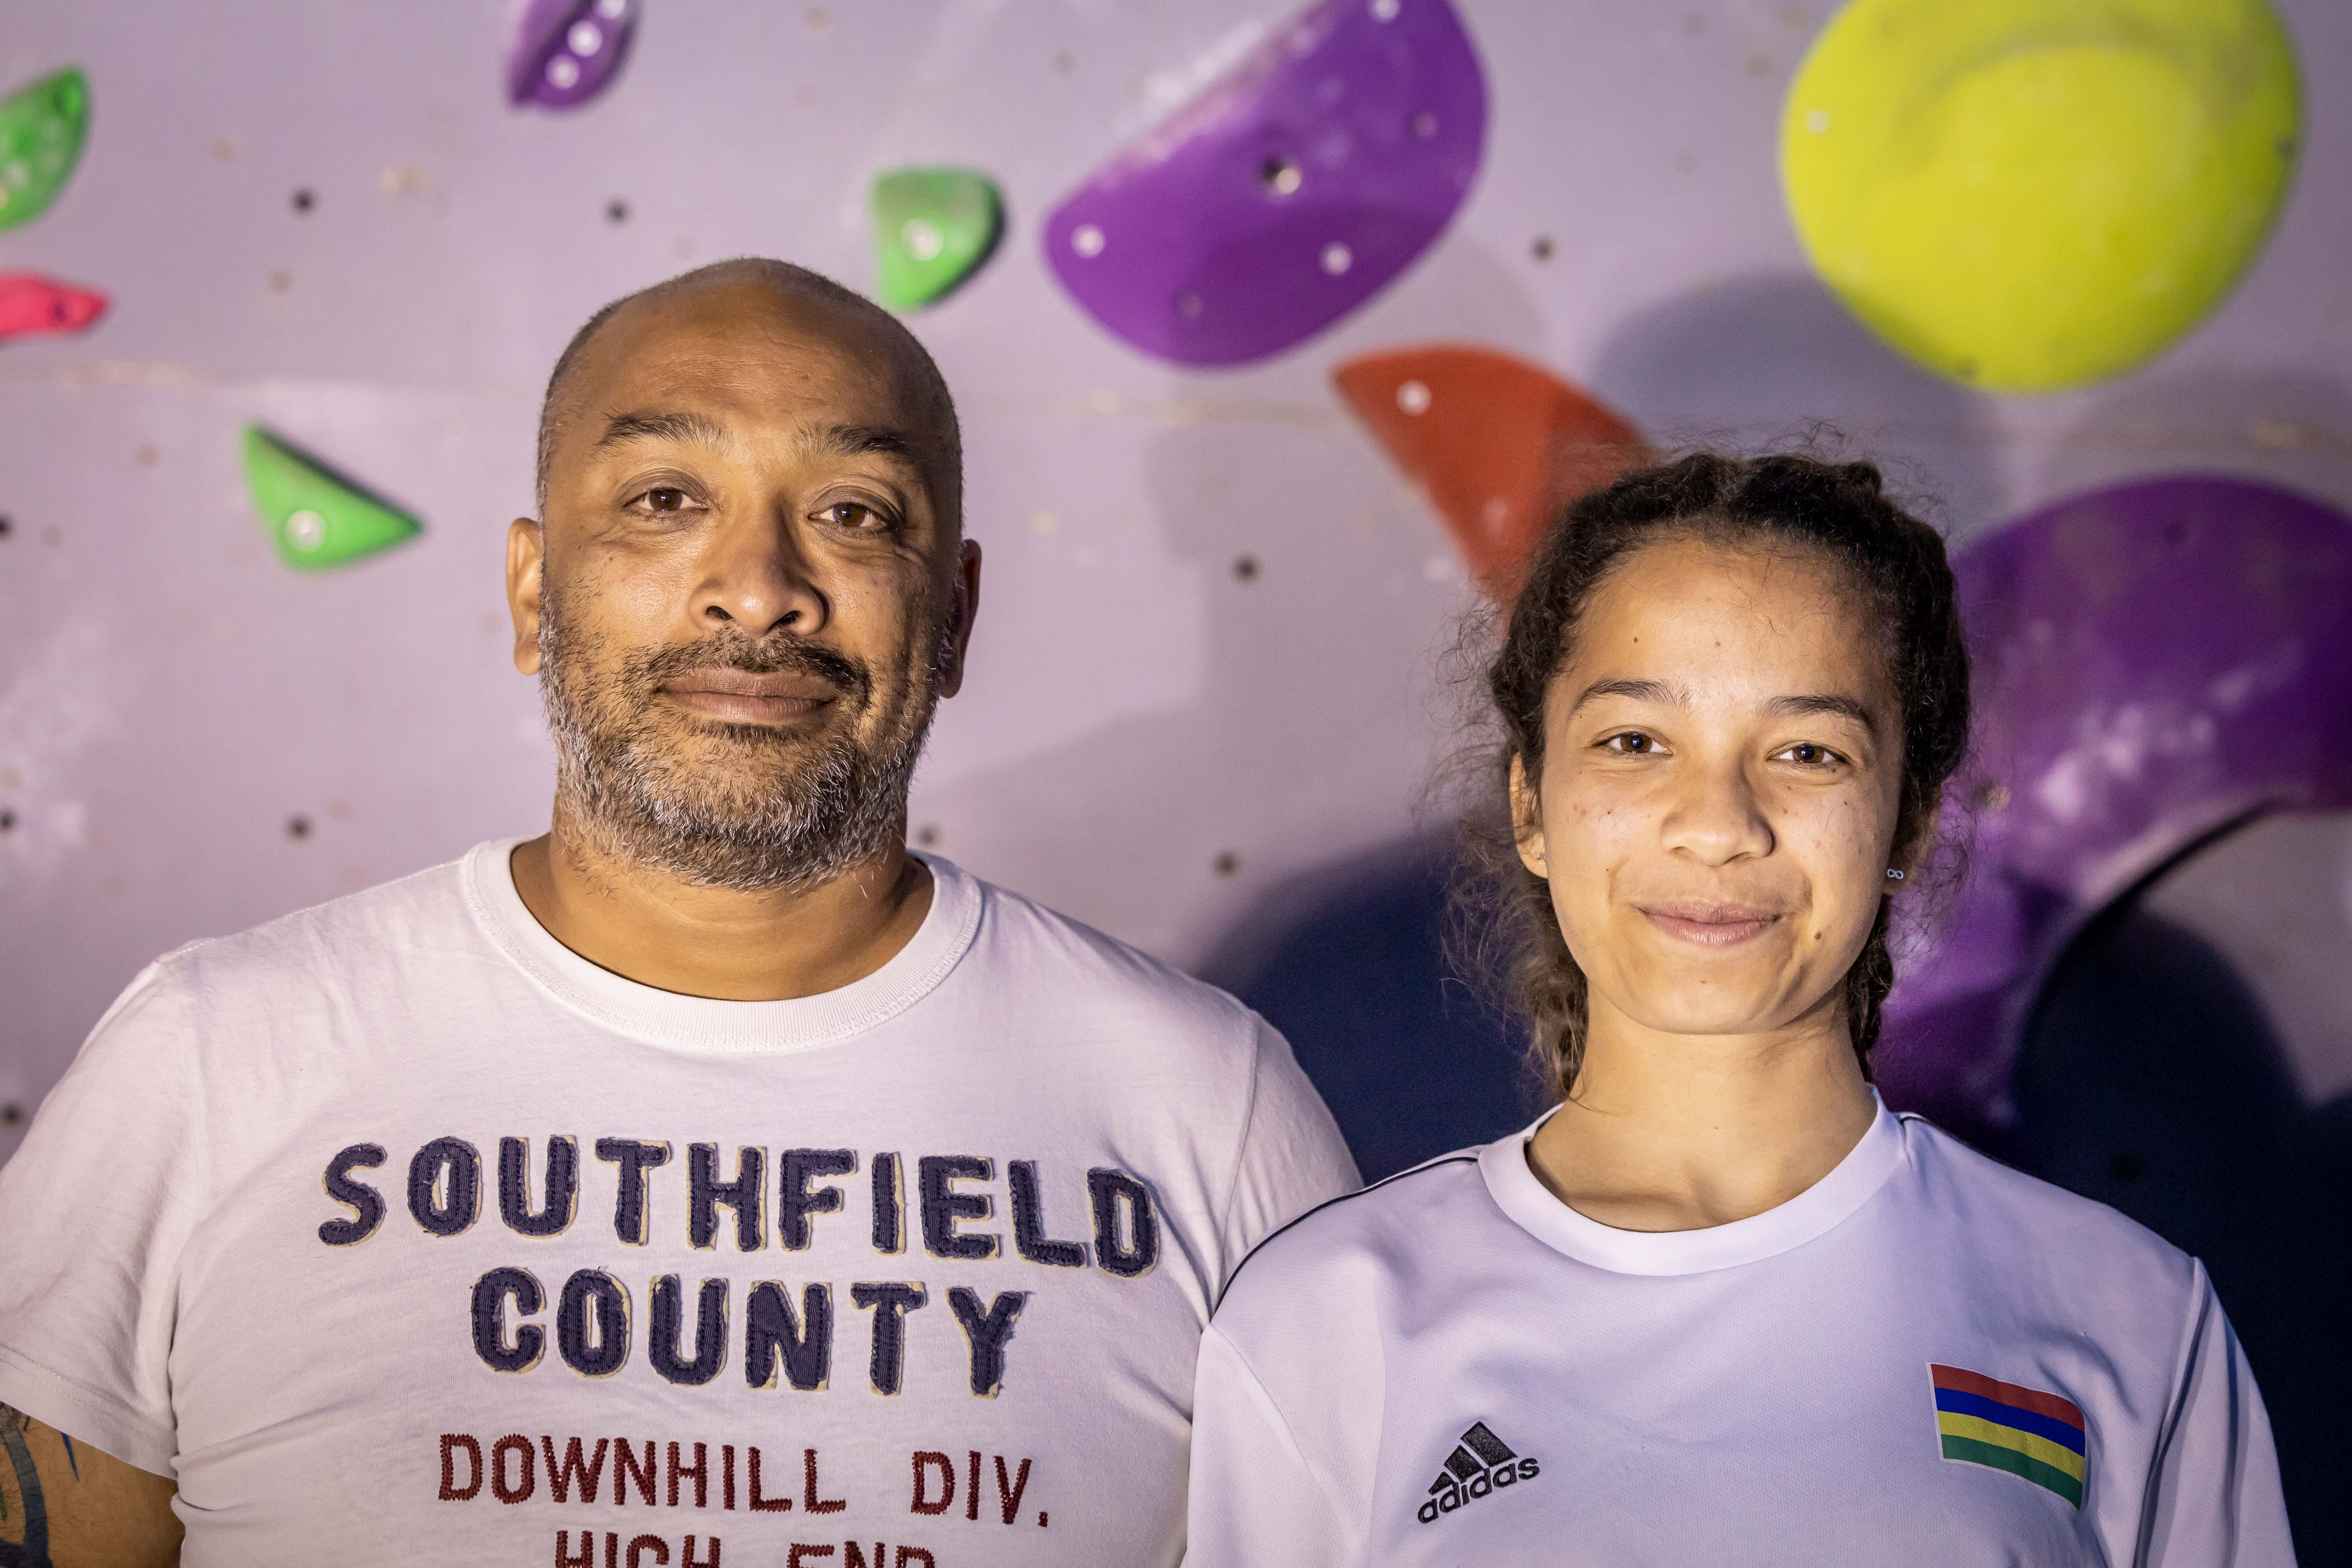 210719 IFSC News Development of Sport Climbing moves another step forward as Mauritius makes first IFSC World Cup appearance in Briancon